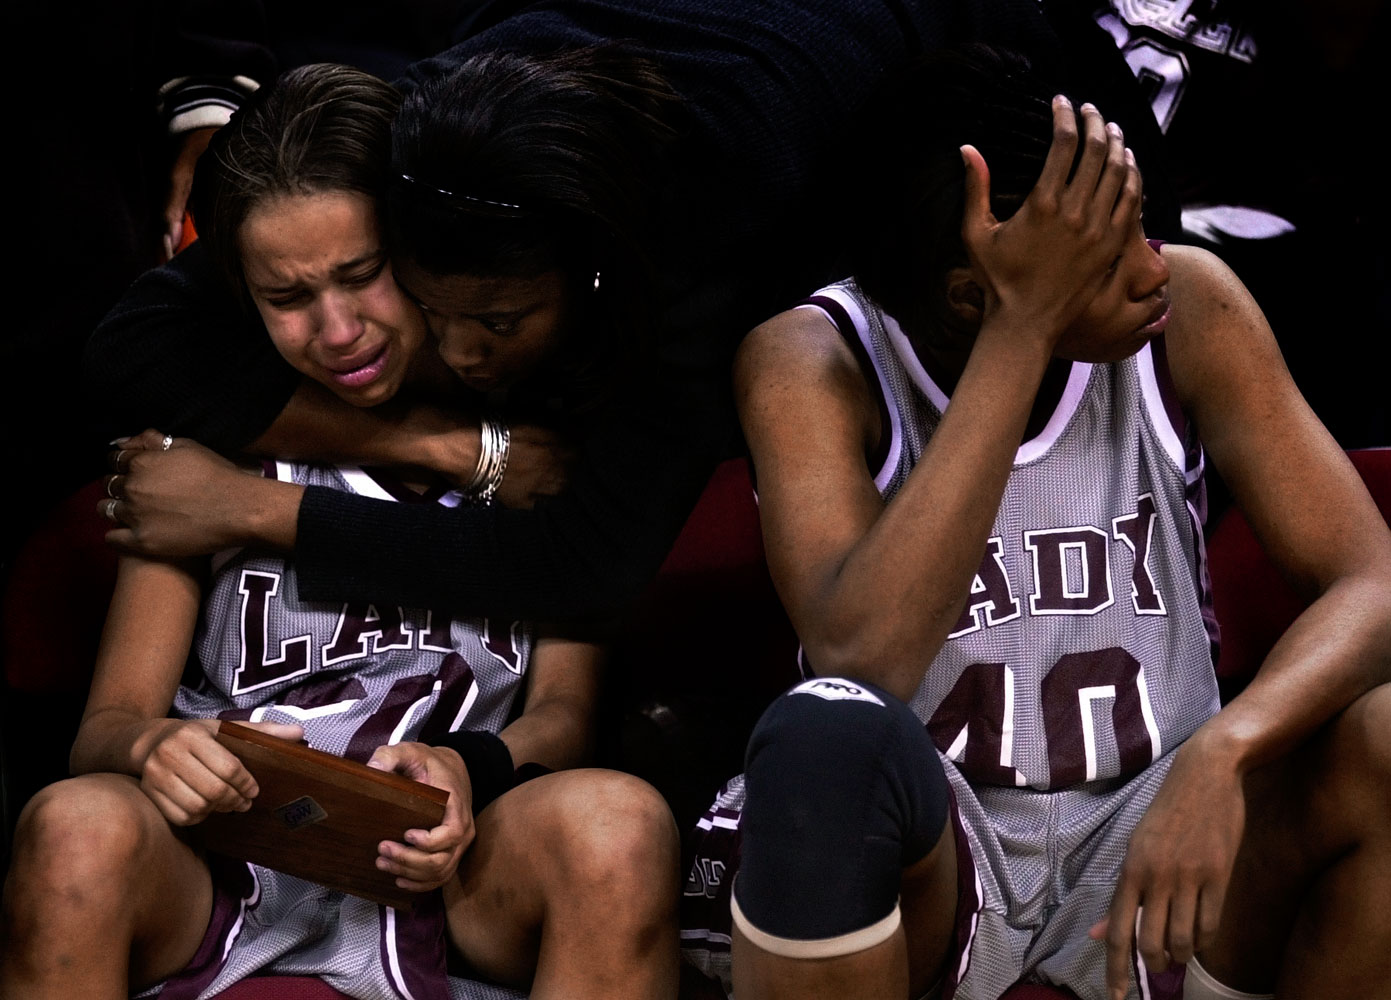 Former NCCU basketball player Fatima Bah consoles Tiona Beatty (20) after their loss in the championship game of the CIAA tournament in Raleigh, N.C. At right is Connie Murdoch (40).